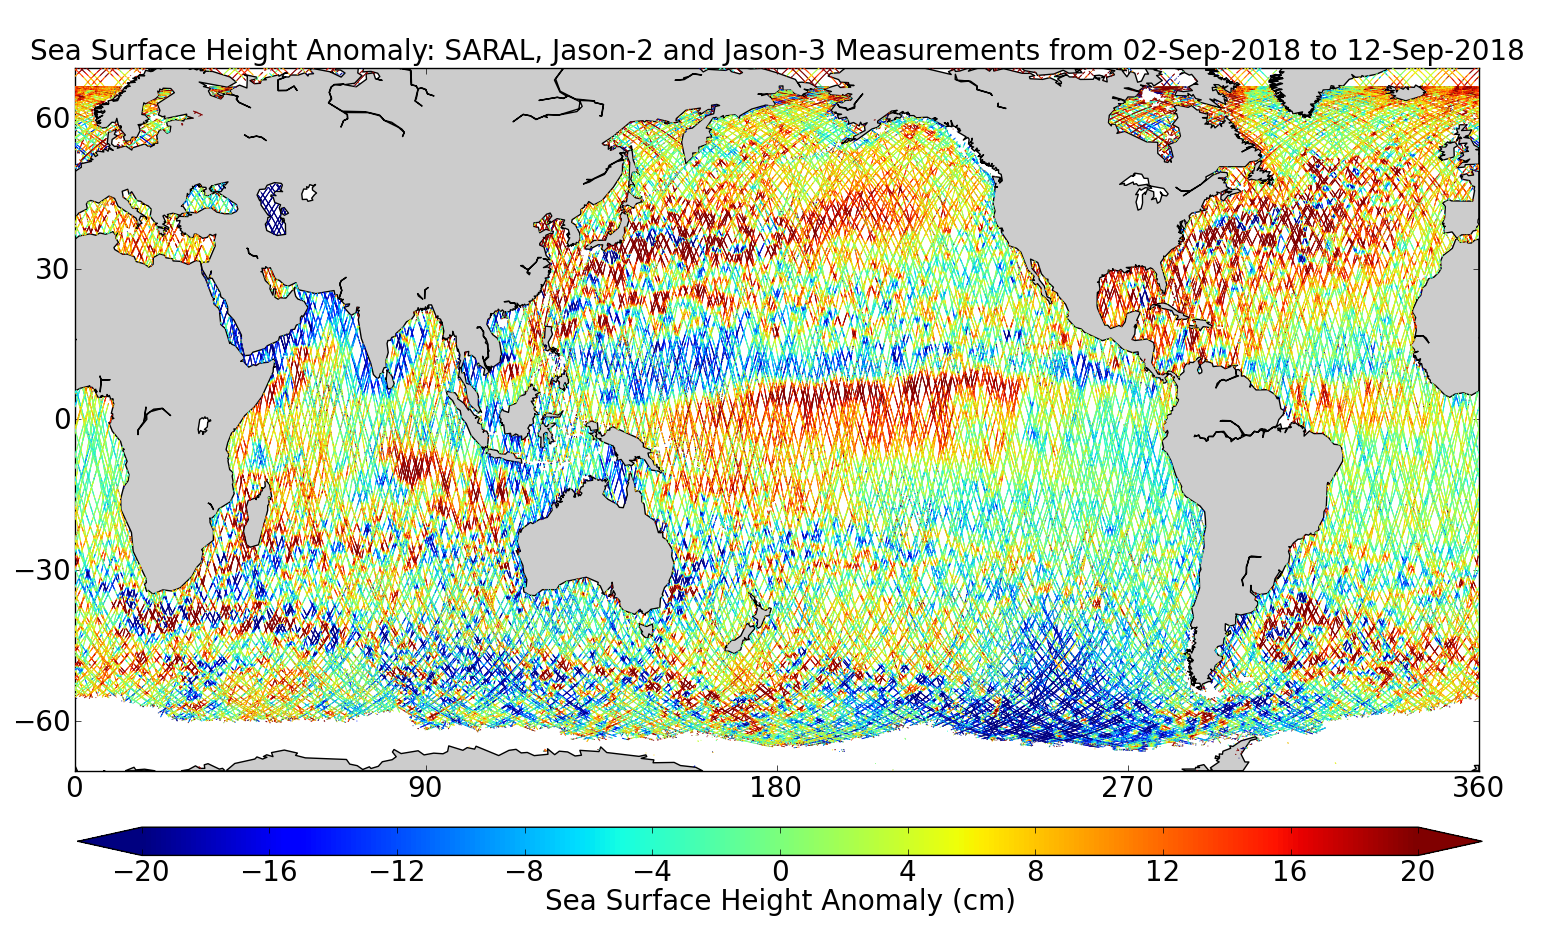 Sea Surface Height Anomaly: SARAL, Jason-2 and Jason-3 Measurements from 02-Sep-2018 to 12-Sep-2018